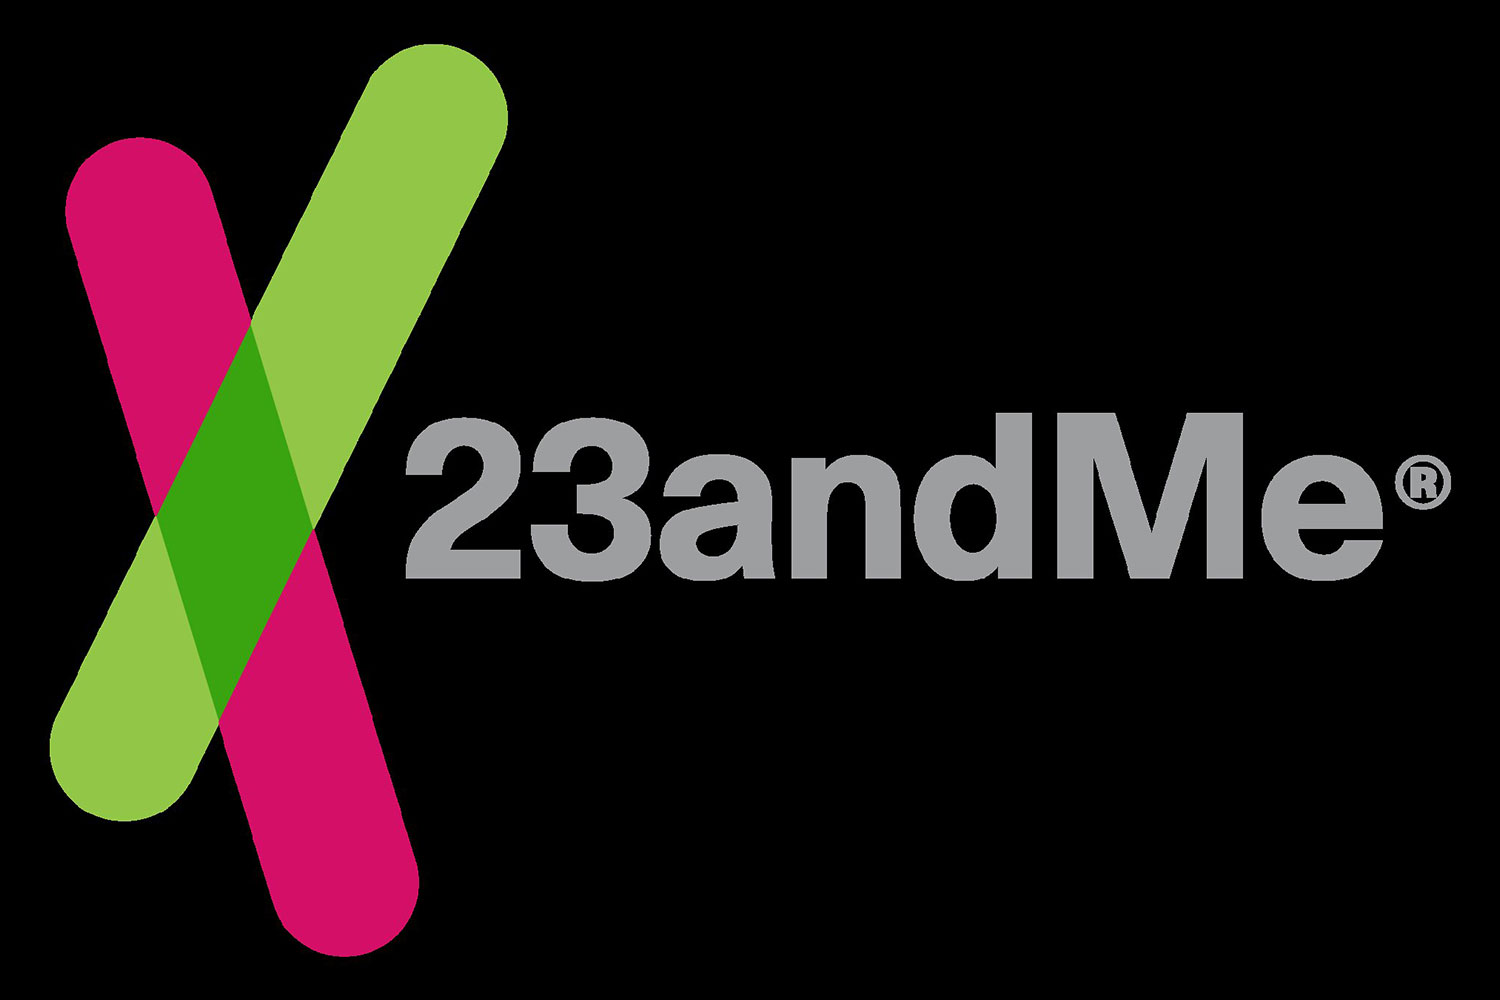 23andMe: Know Your DNA to Better Understand Health Predispositions